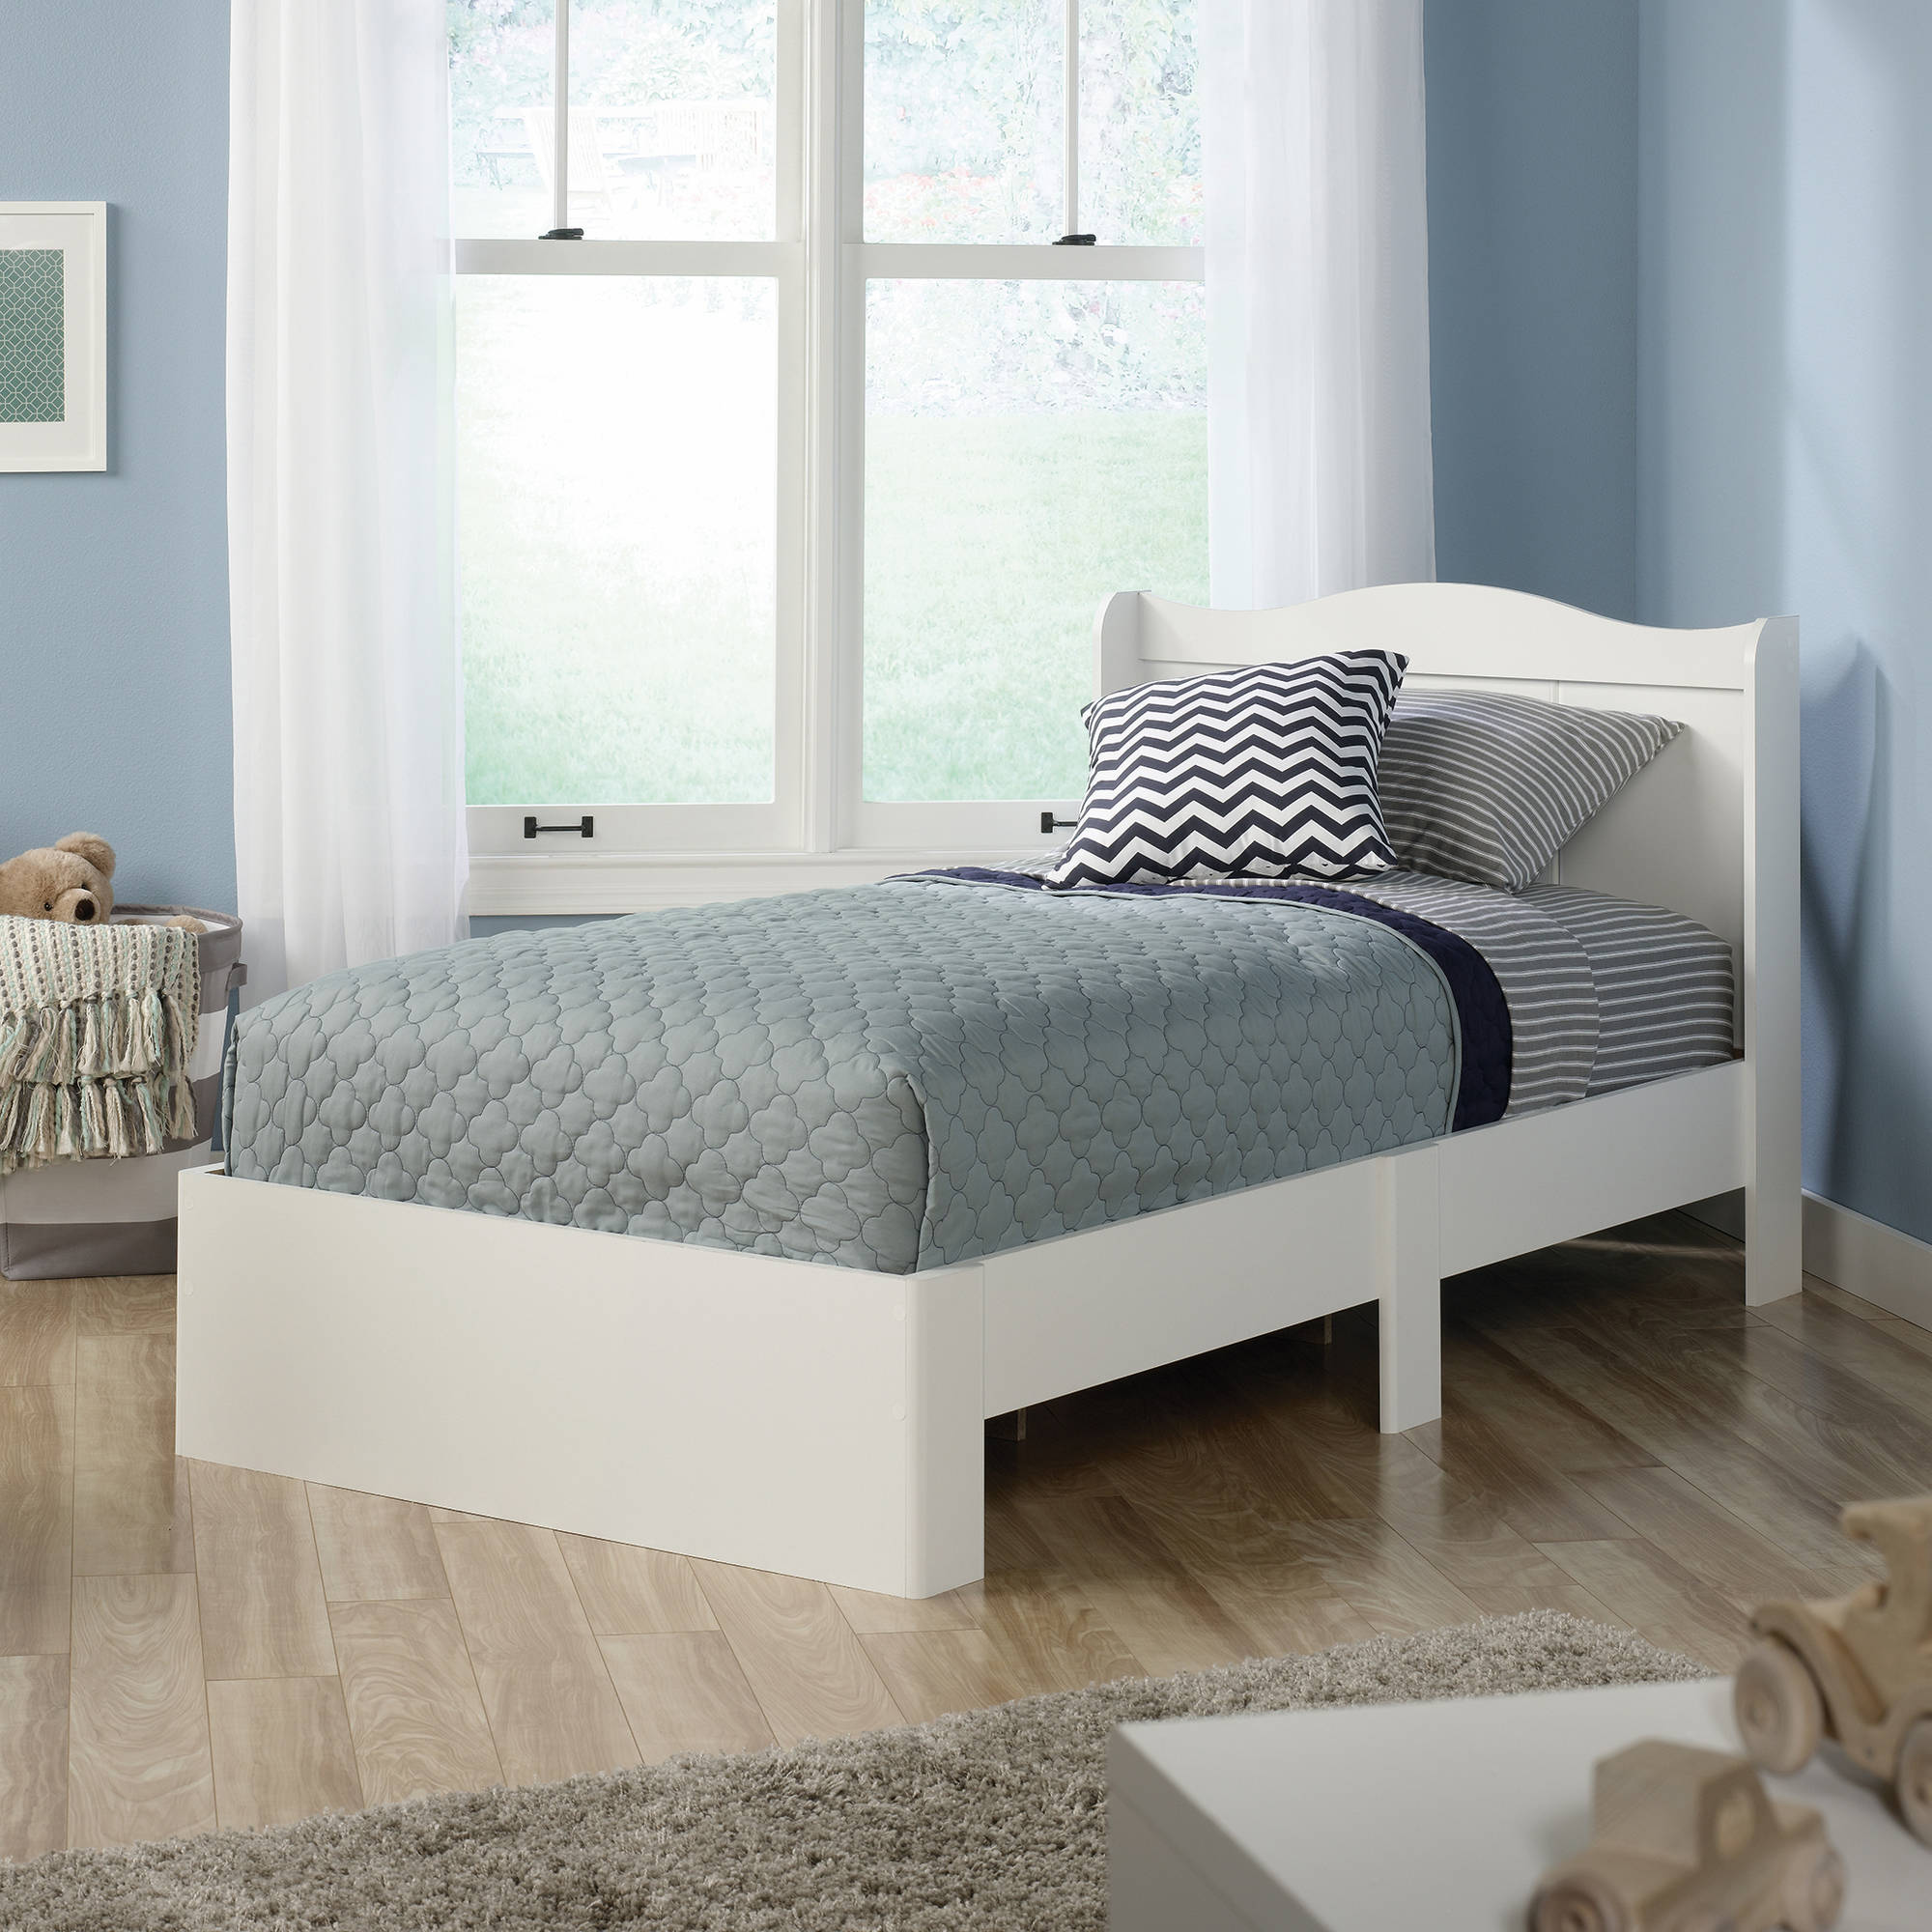 Sauder Storybook Twin Mates Bed, Soft White Finish